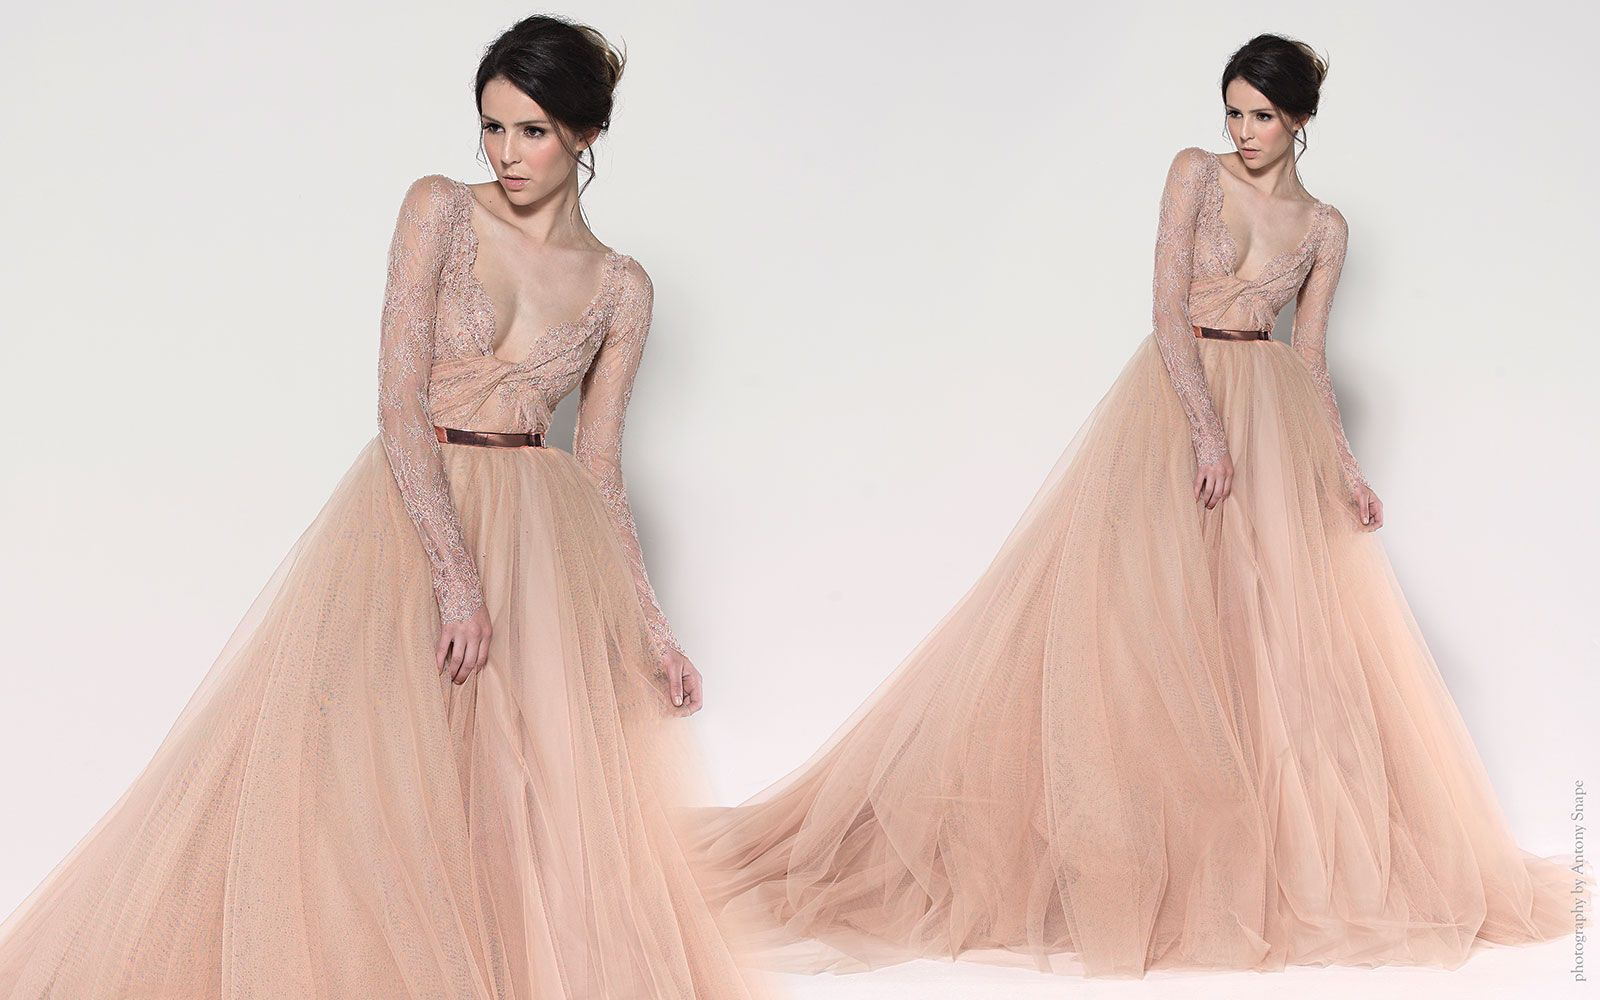 Champagne colored wedding dress  Paolo Sebastian  Official Site  Wedding dresses  Pinterest